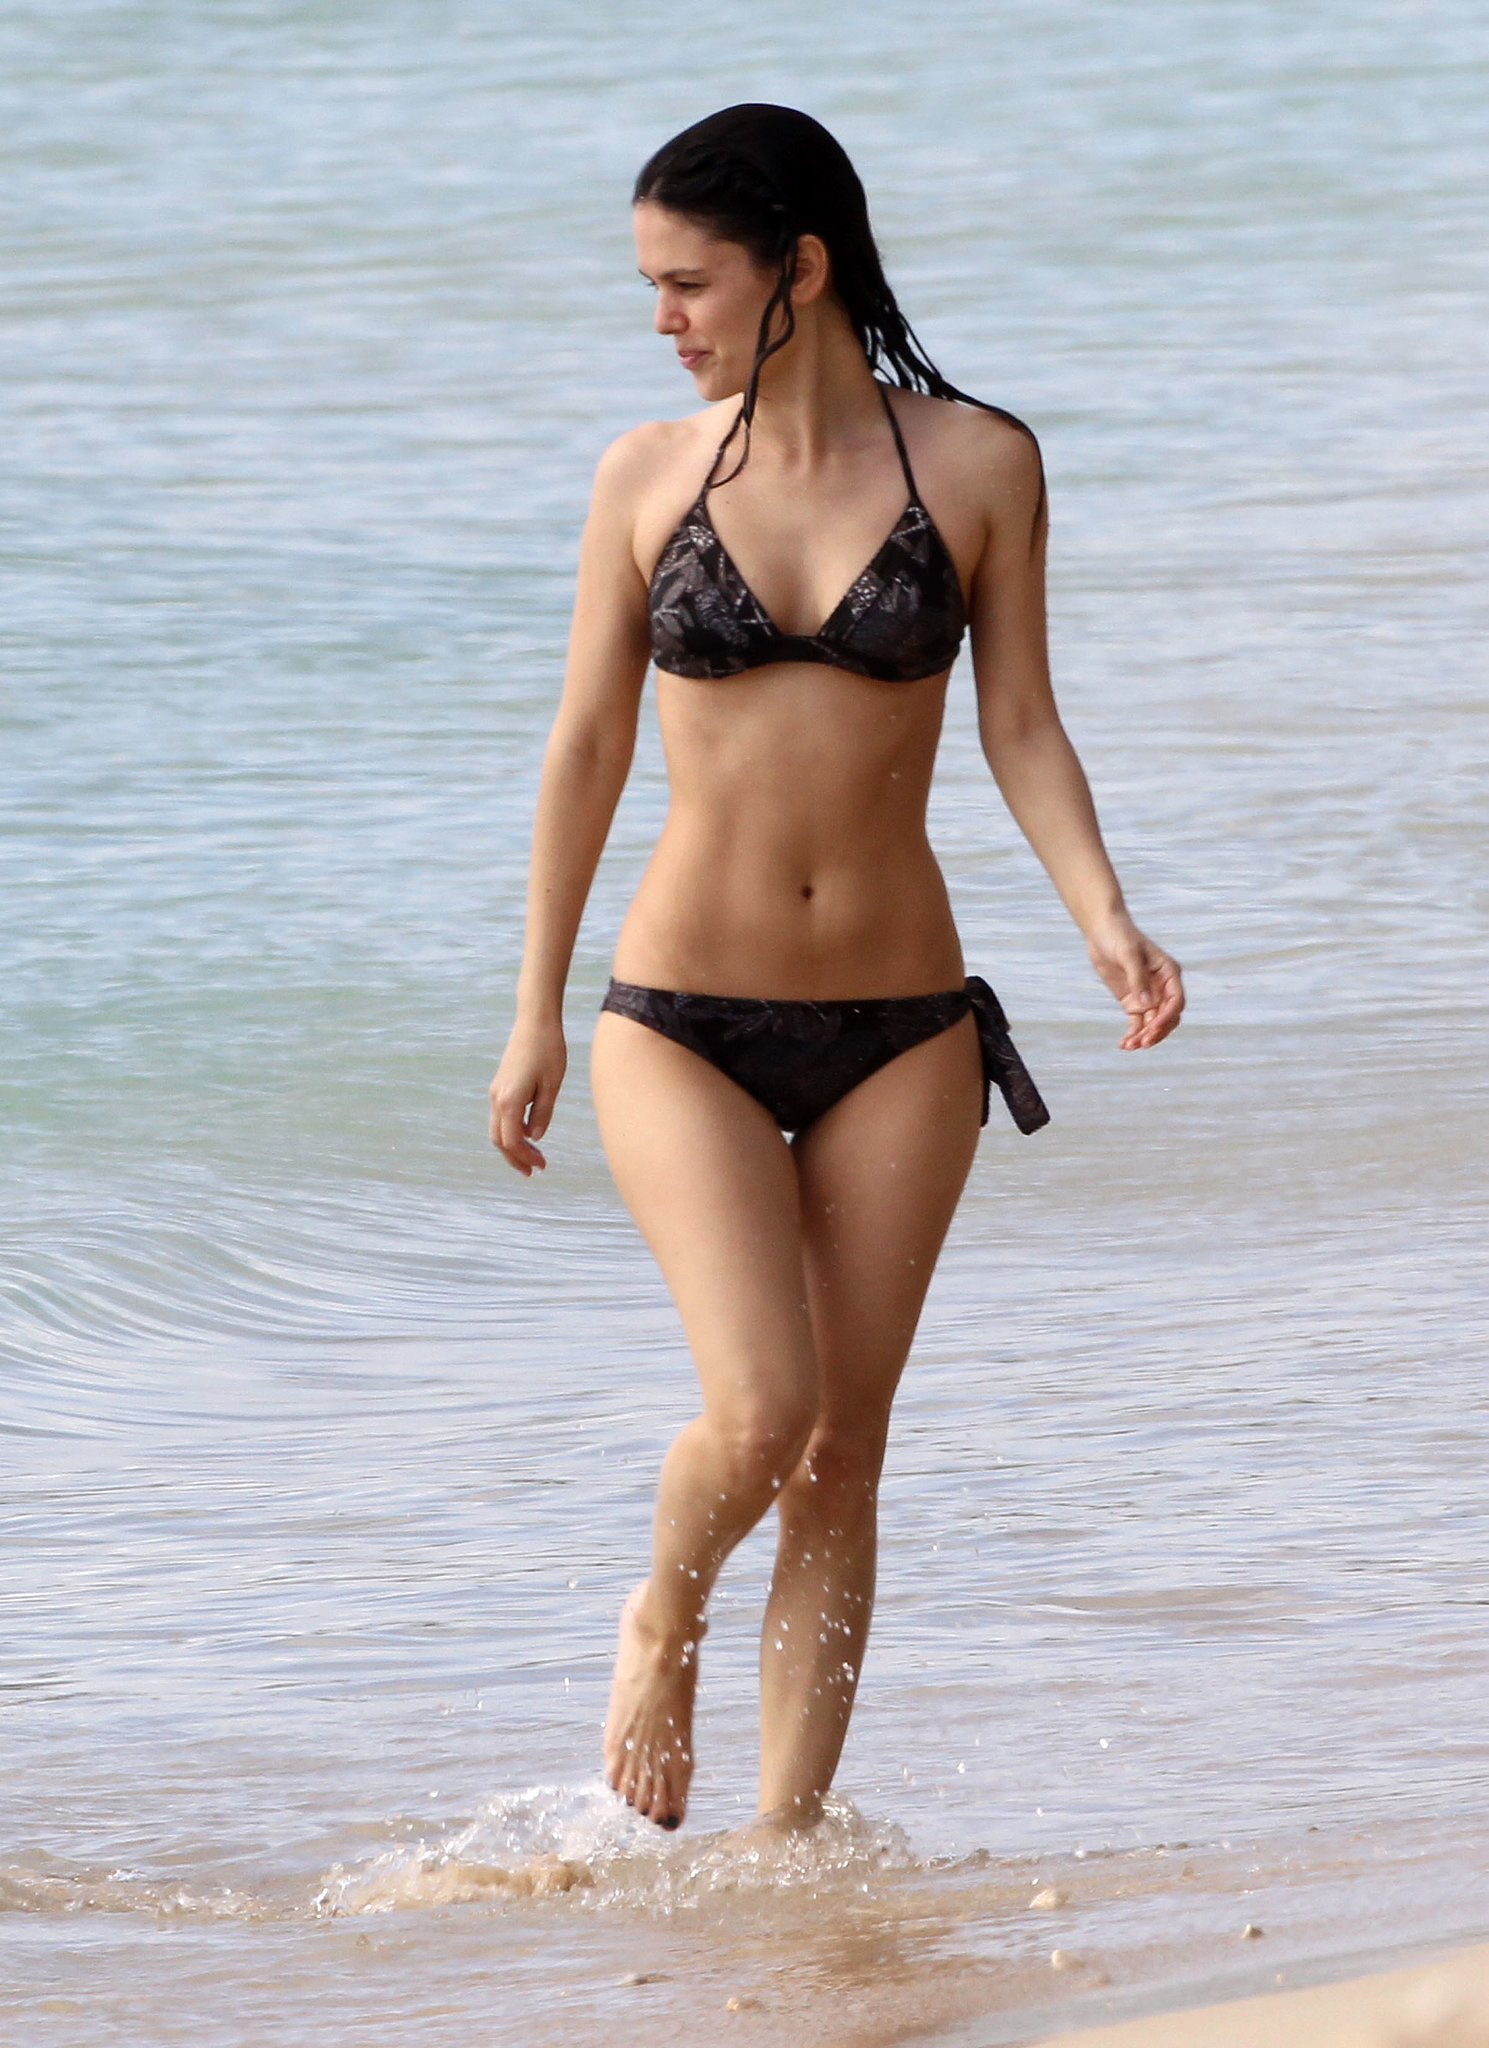 Rachel Bilson rocked a black bikini and showed off her toned abs during an April 2012 vacation in Hawaii.